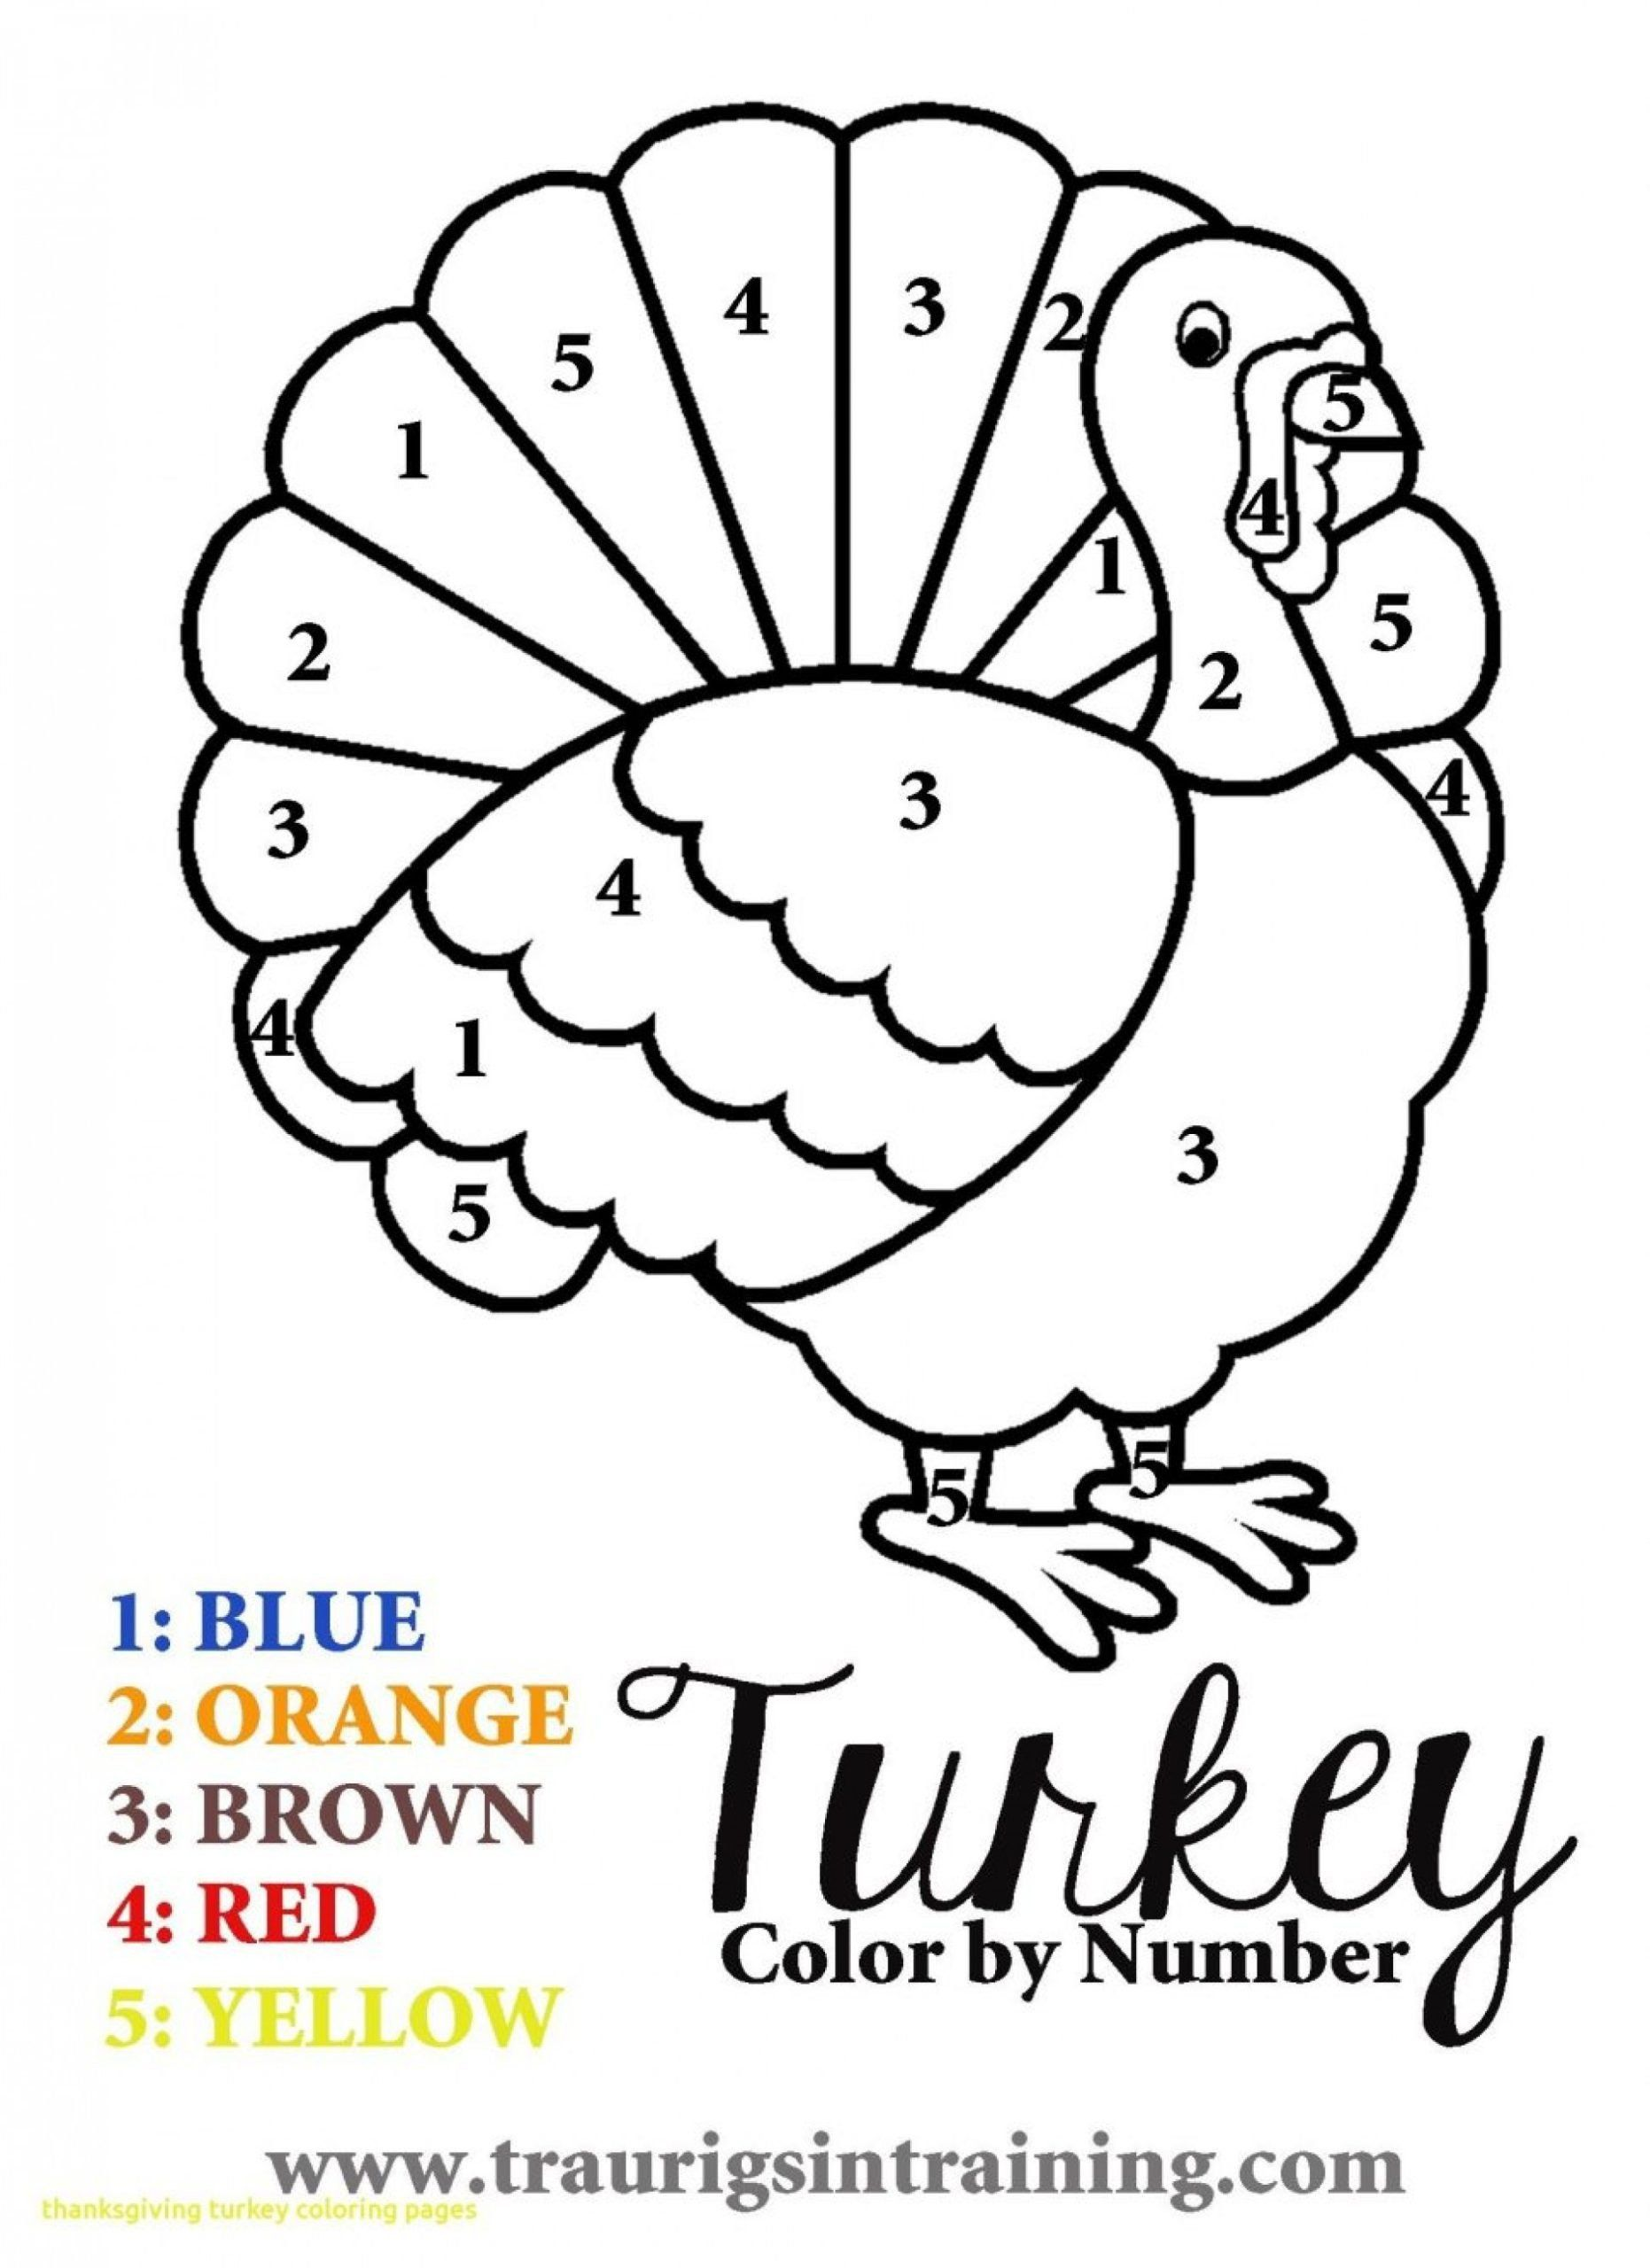 Thanksgiving Math Worksheets 5th Grade Math Worksheets 5th Grade Fr Printable An Turkey Coloring Pages Thanksgiving Coloring Pages Thanksgiving Coloring Sheets